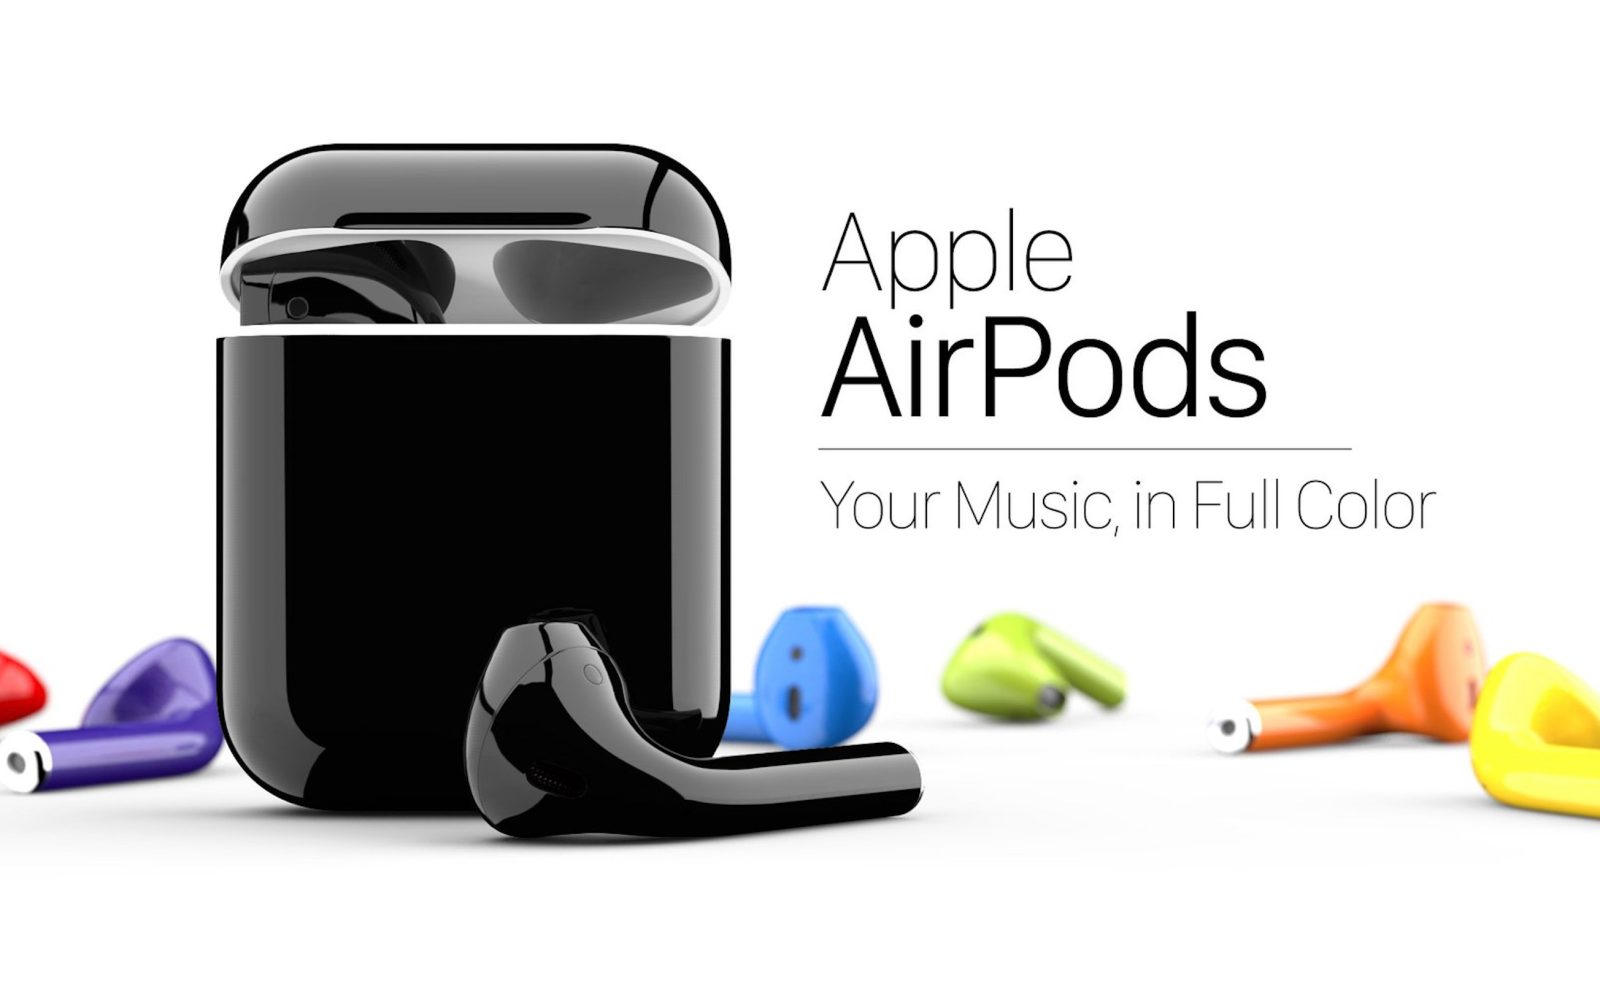 ColorWare introduces ability to customize AirPods in 58